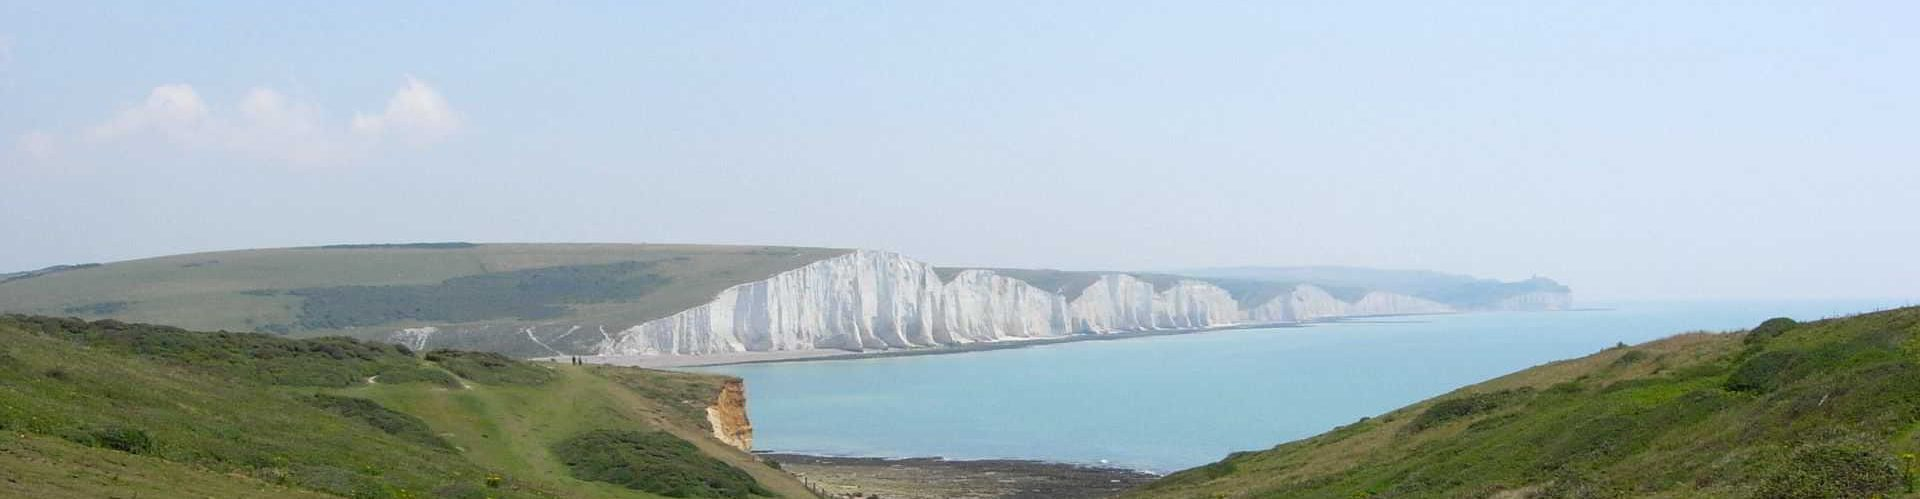 Seaford-Head-Sussex